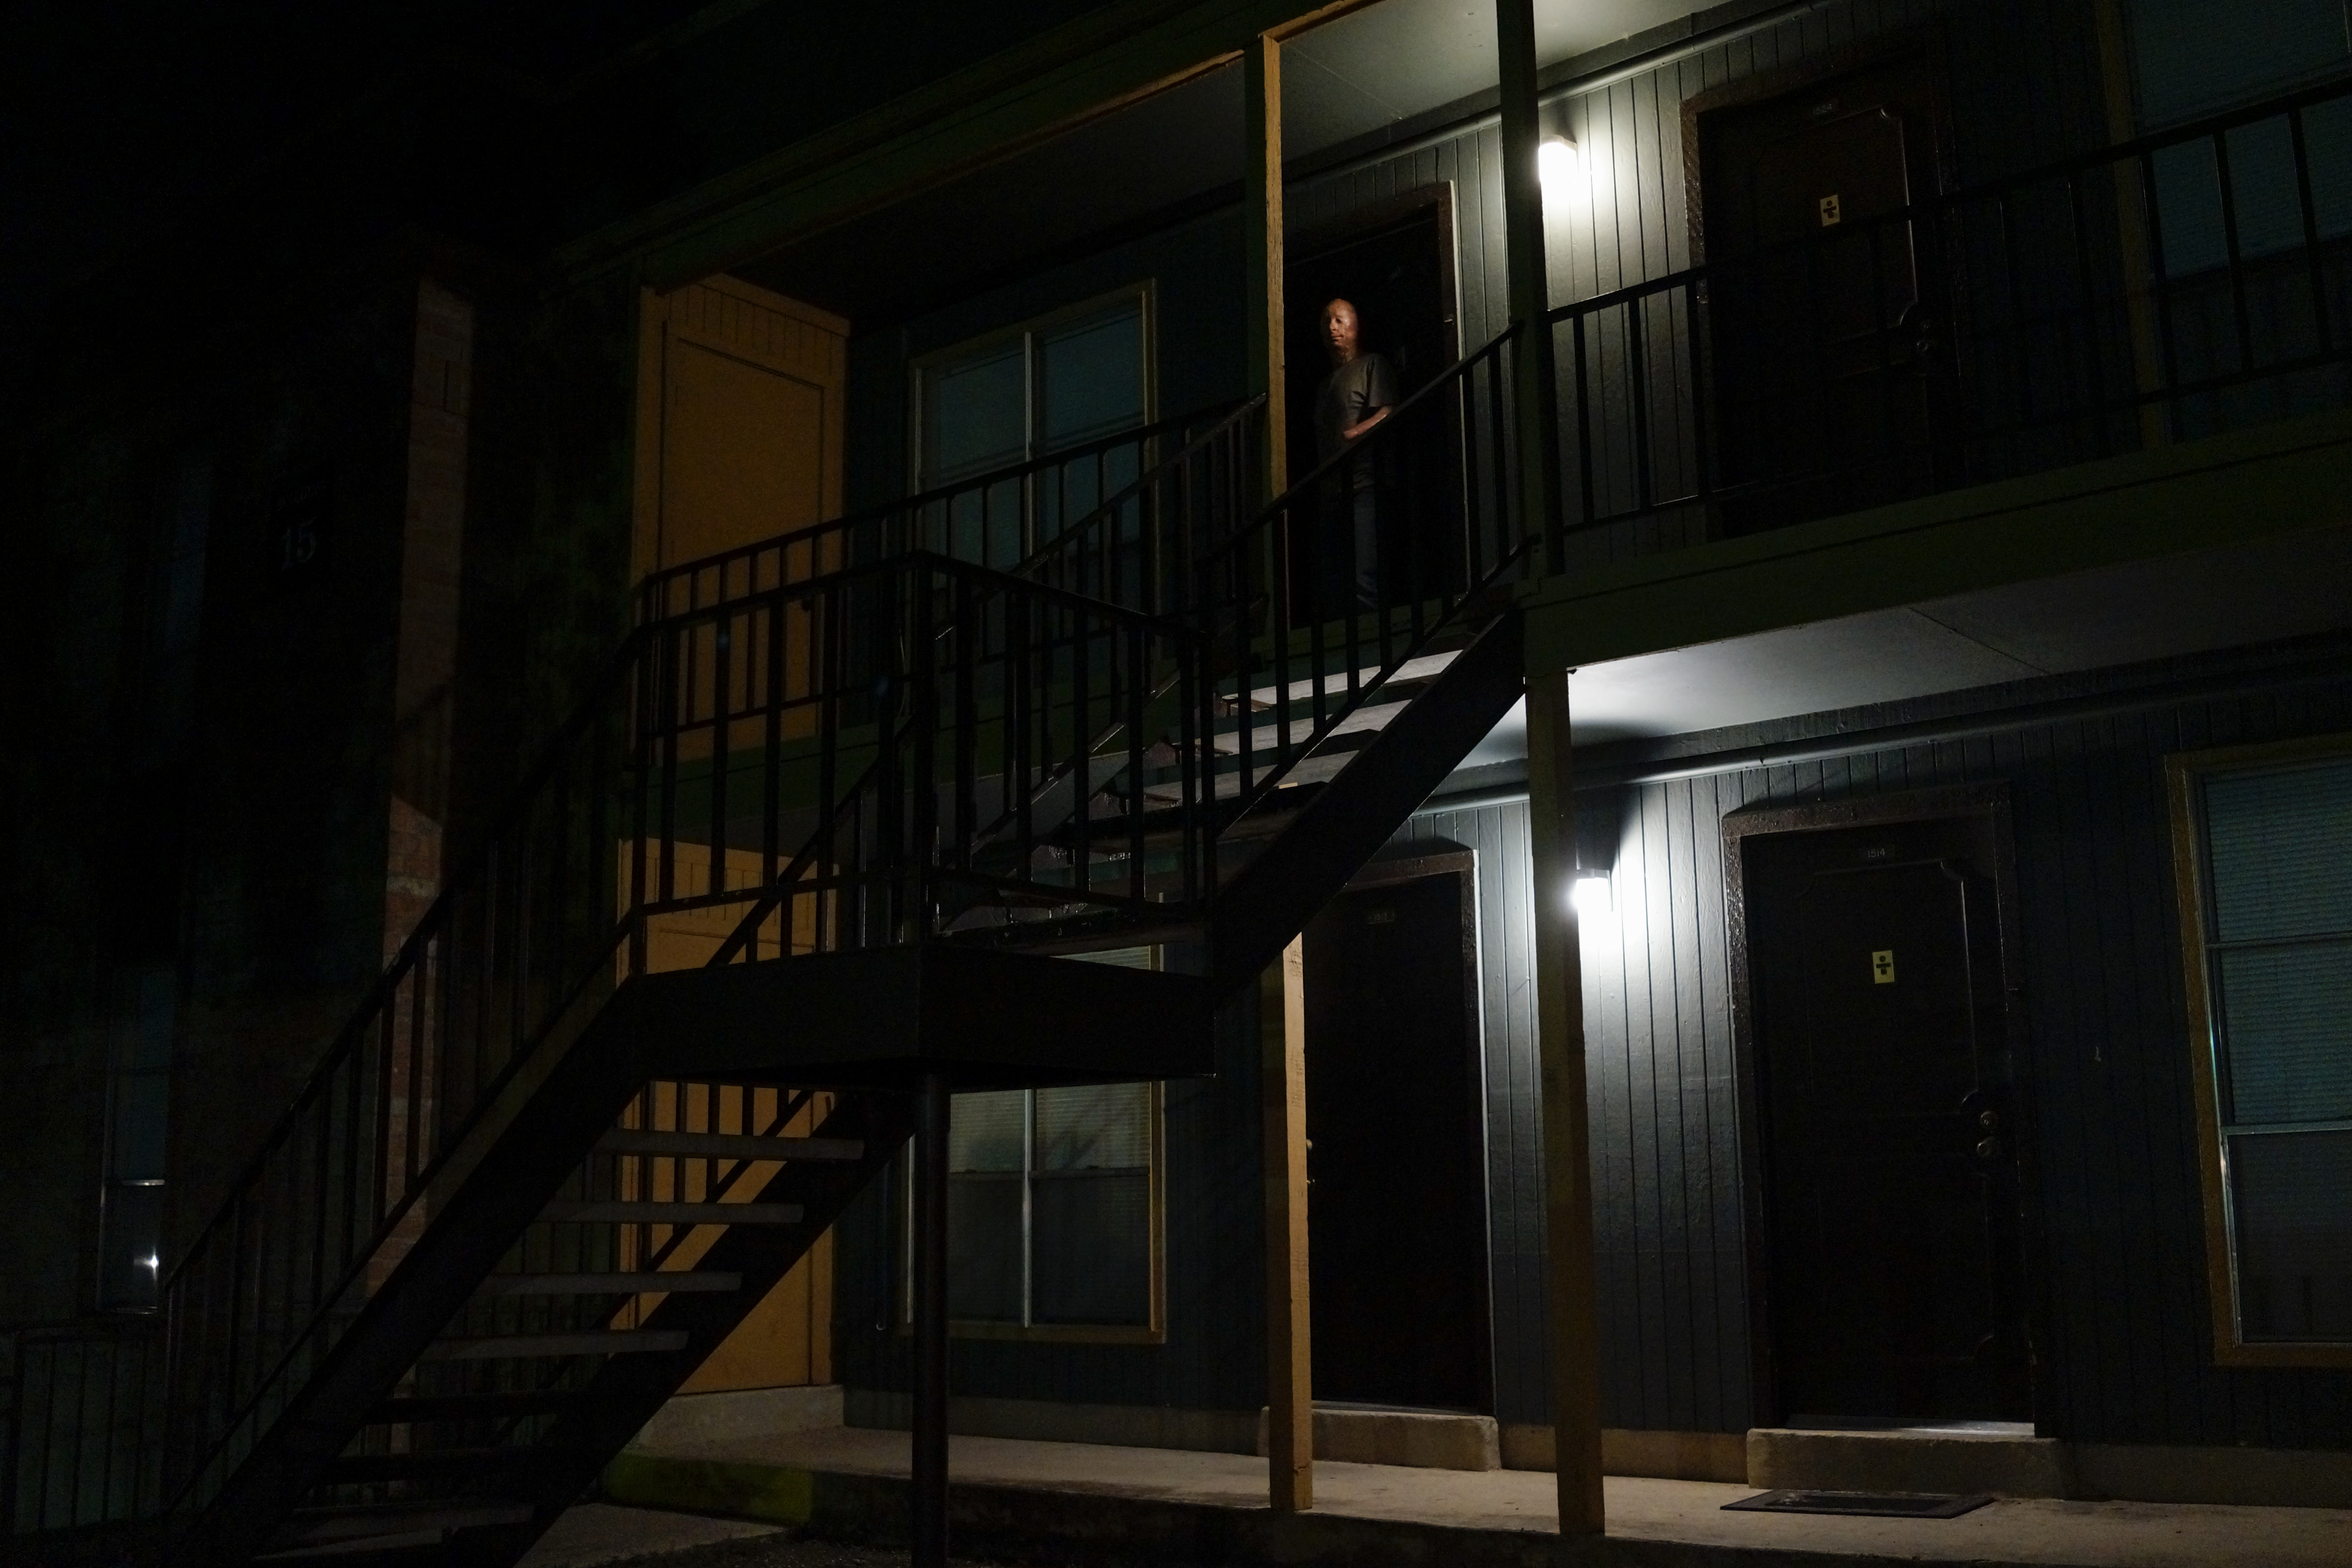 Returning home to his apartment after a weekly comedy routine at the Bracken Saloon in San Antonio. 2013.